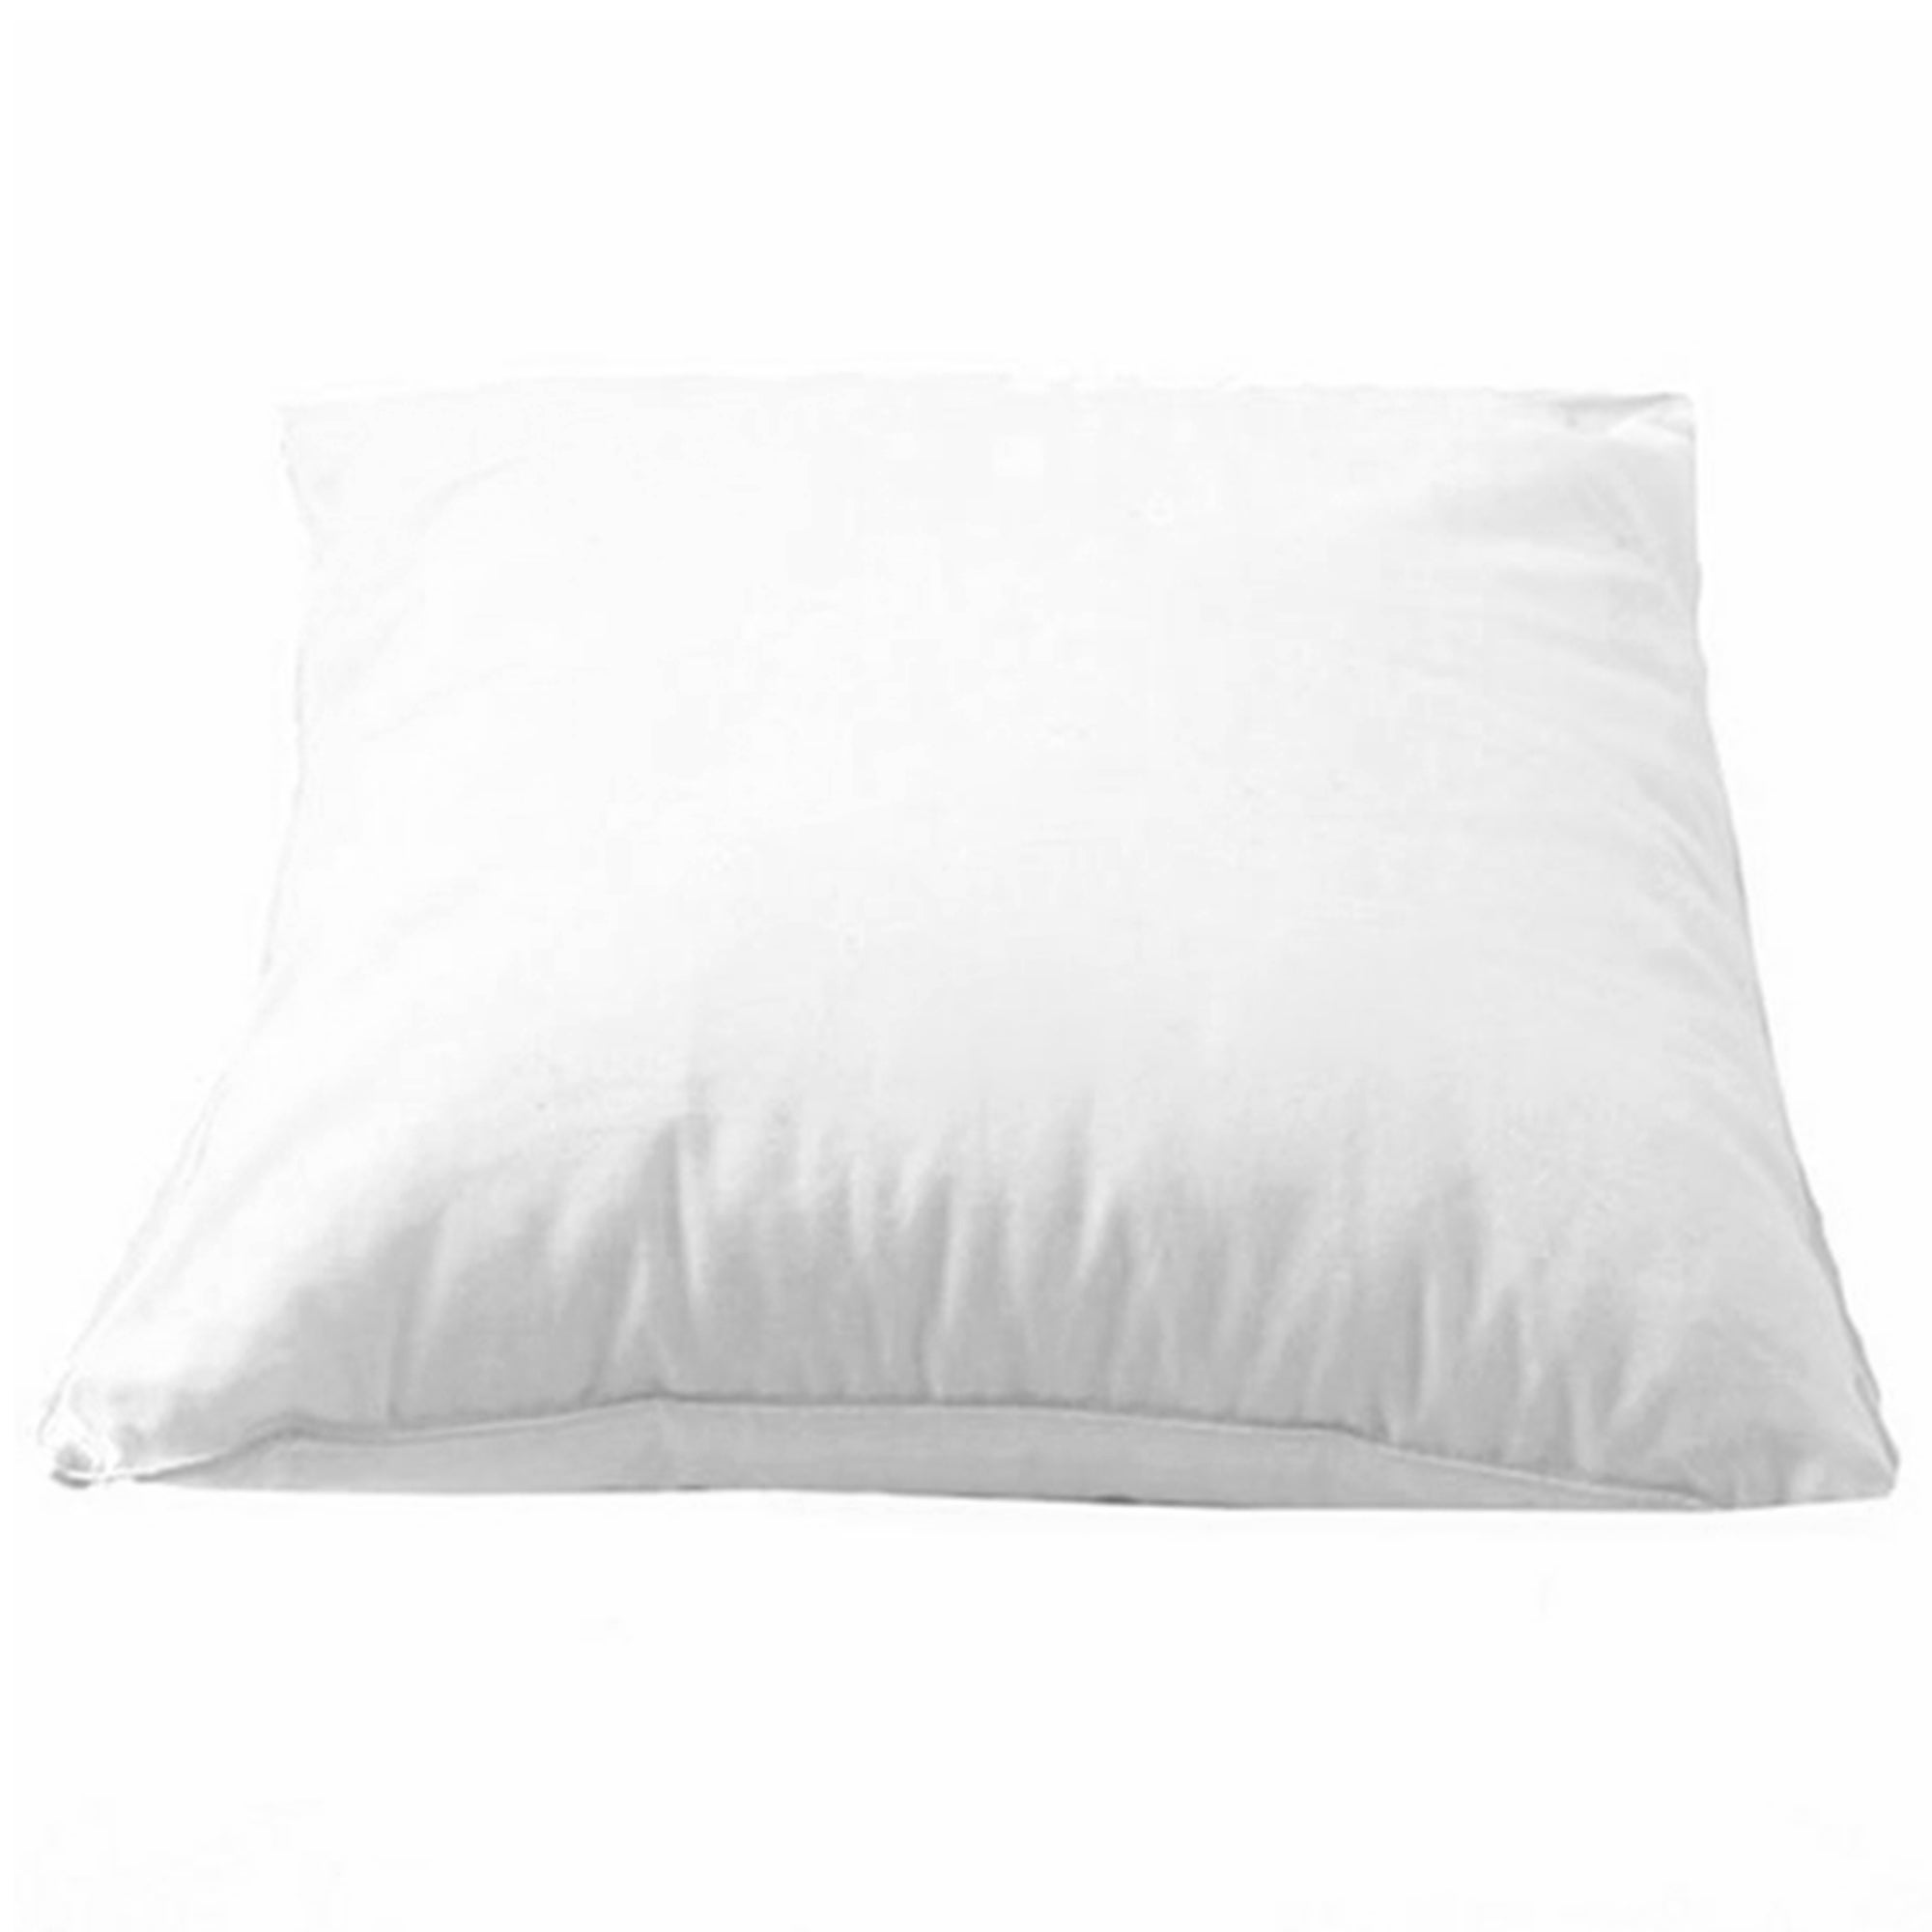 White Cushion Pad